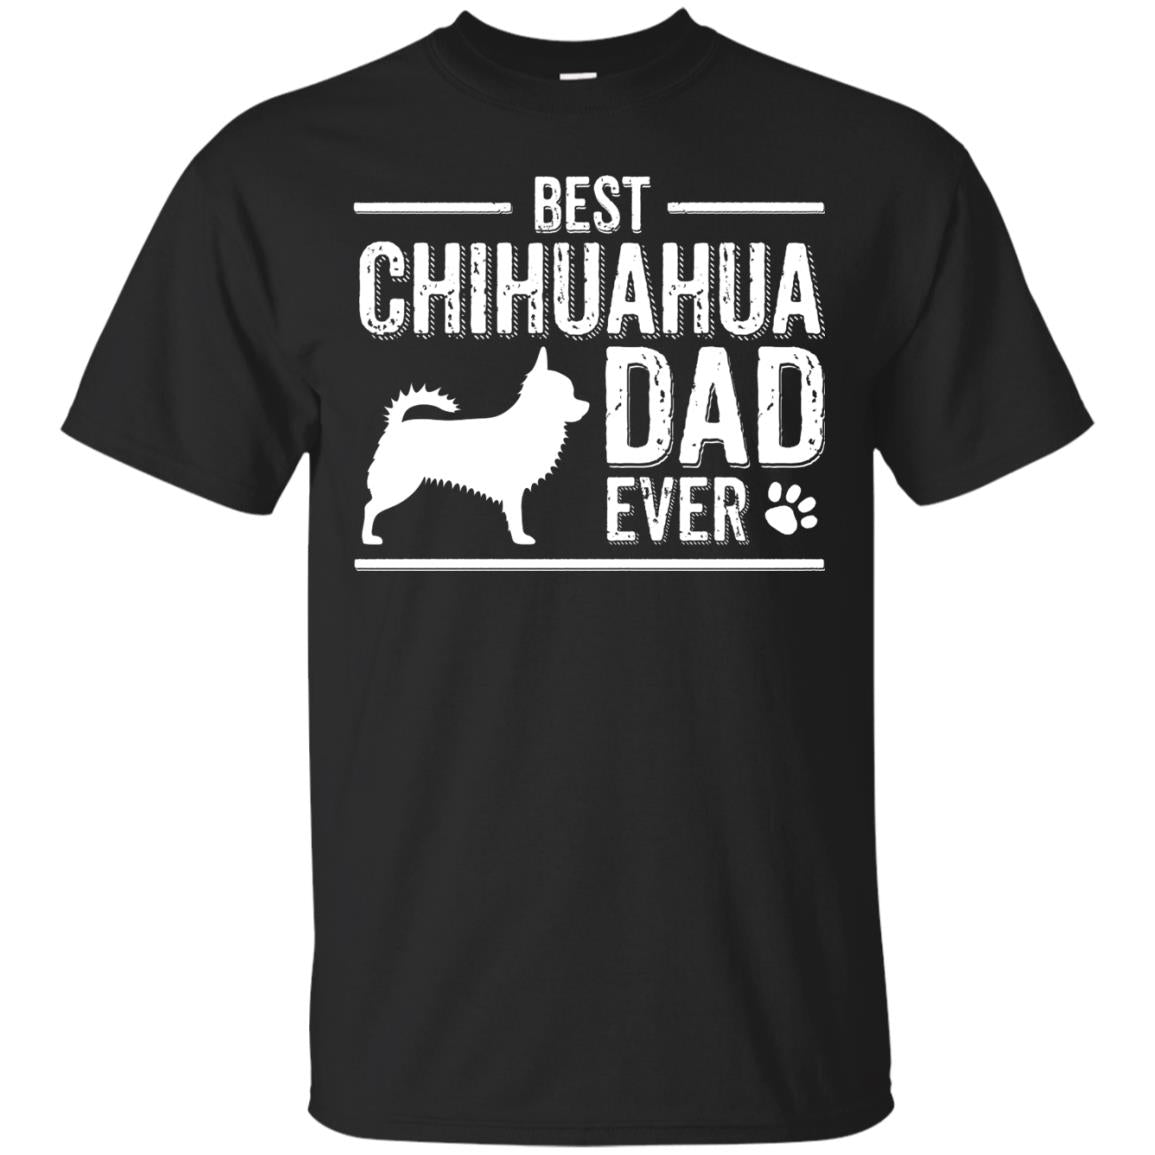 Chihuahua Dad T Shirt Best Dog Owner Ever